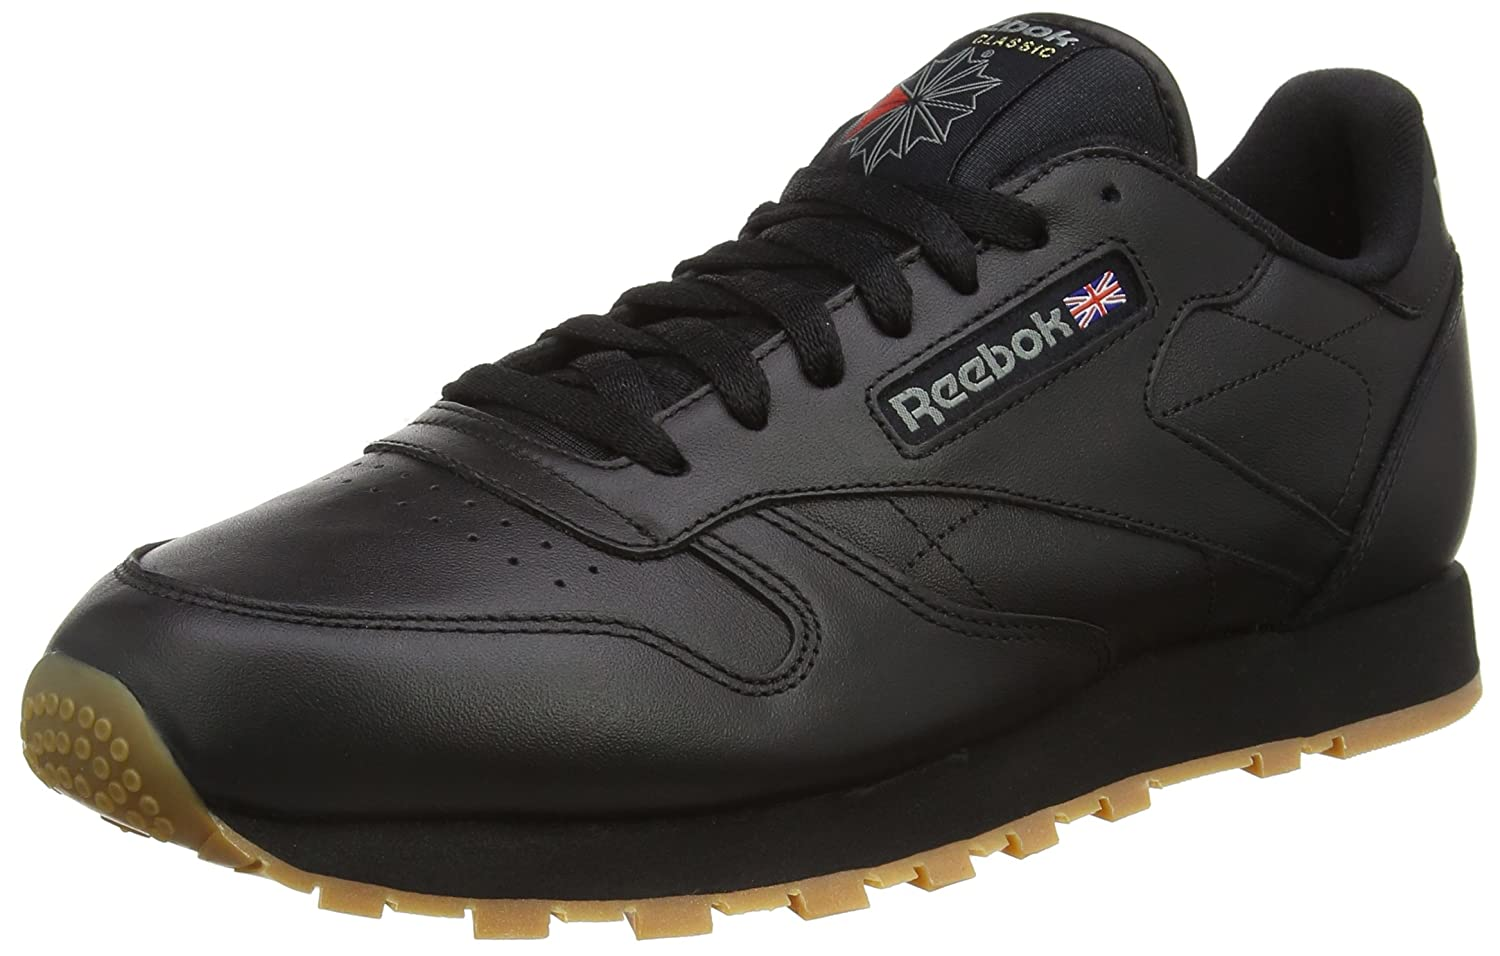 46bf36a6f9f Reebok Classic Leather Men s Training Running Shoes  Amazon.co.uk  Shoes    Bags